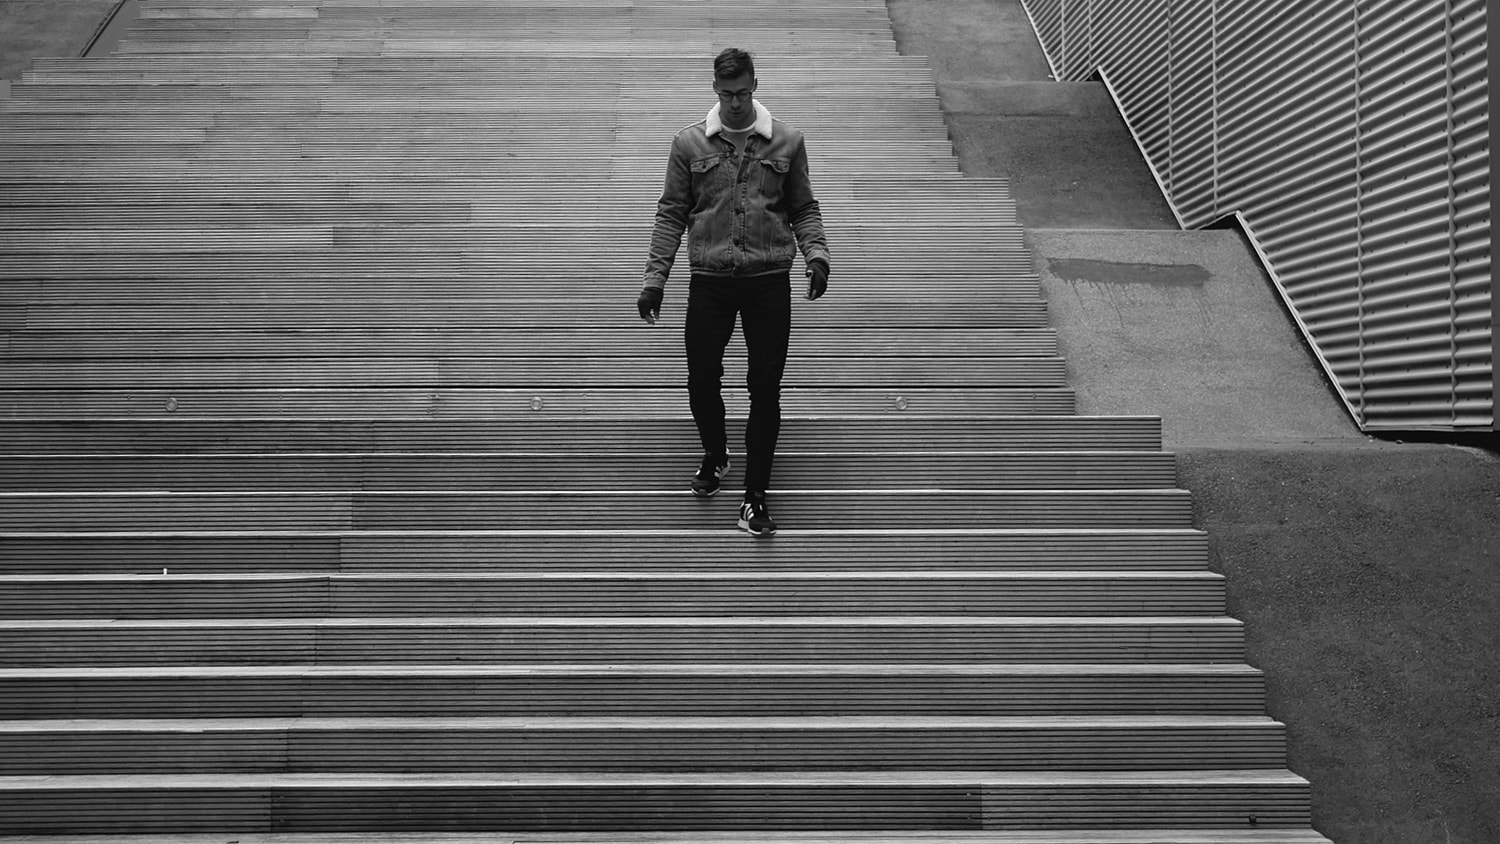 A man walking down a stairs. Copenhagen